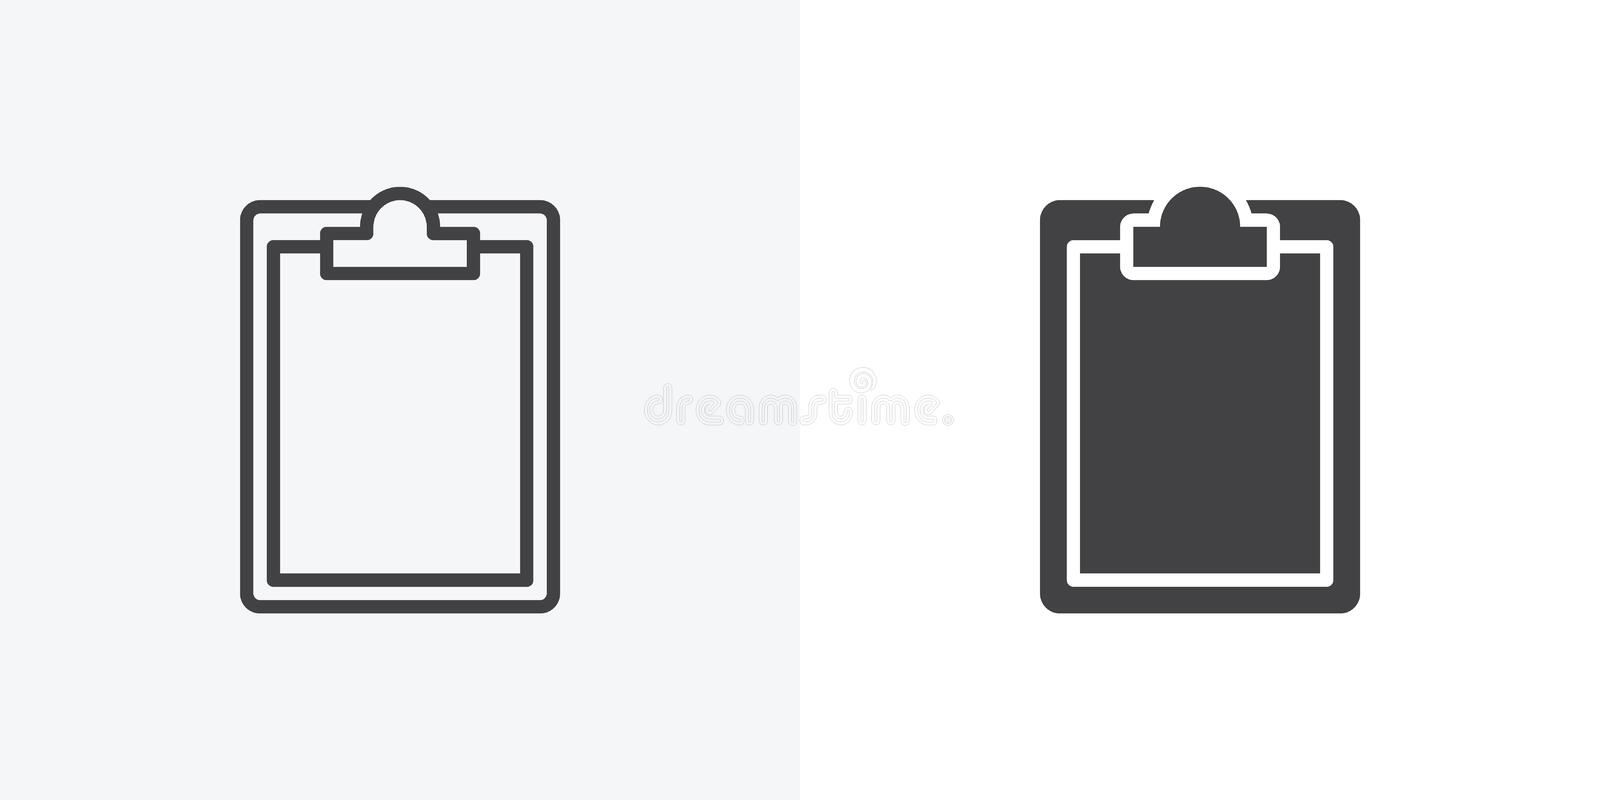 Paper clipboard icon royalty free illustration